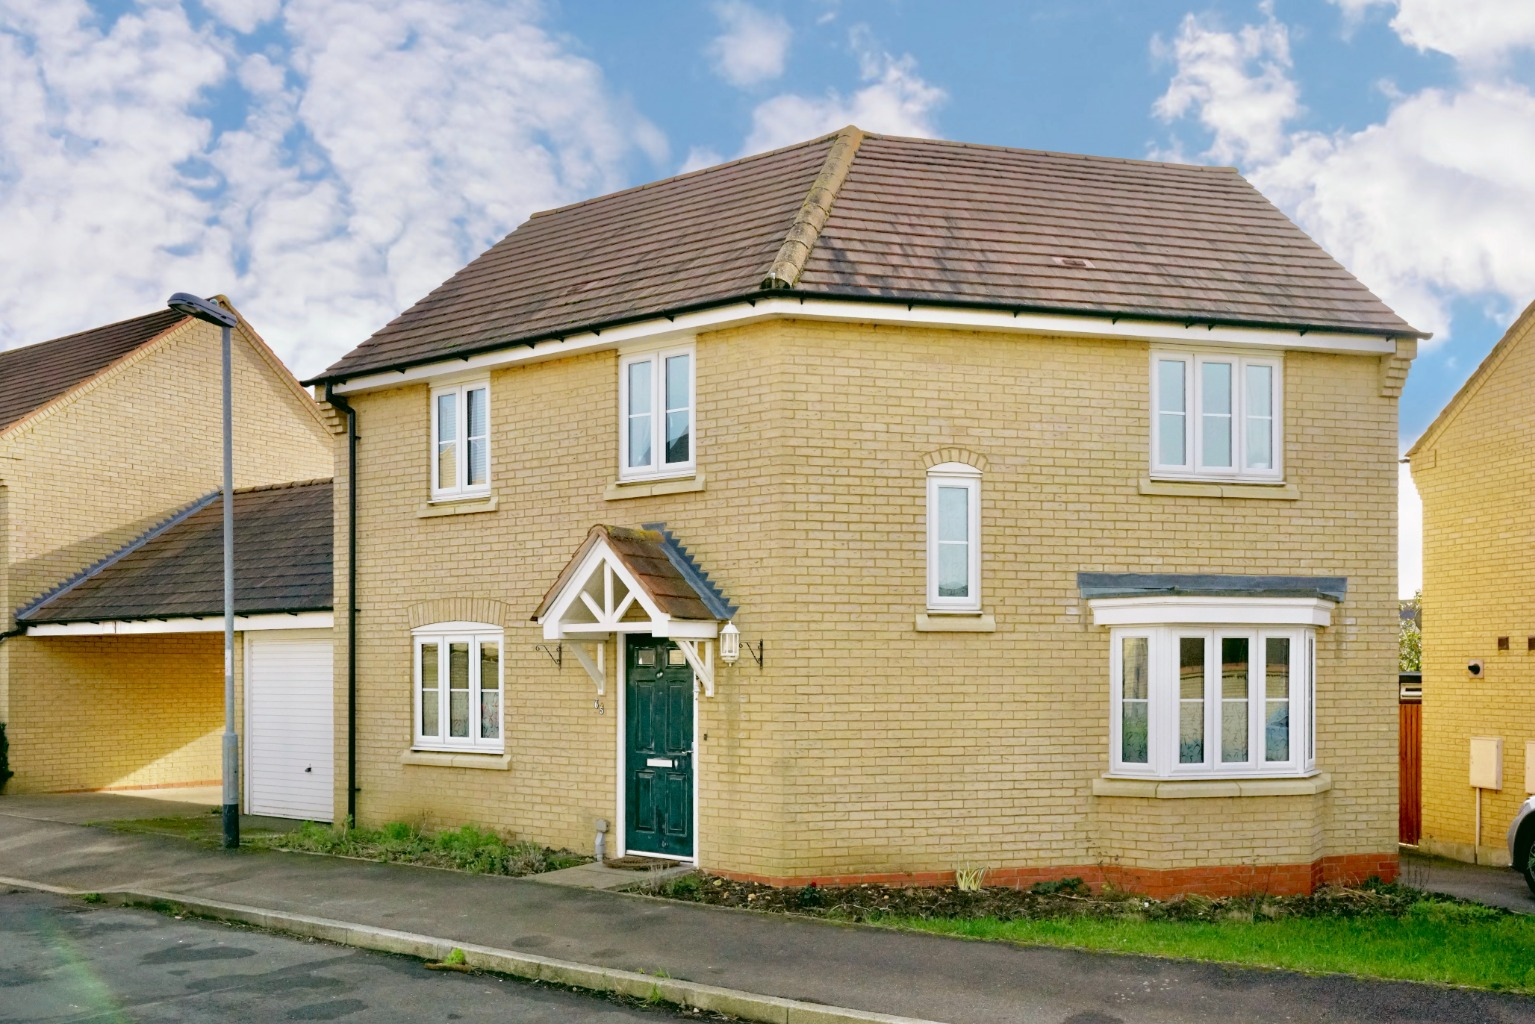 3 bed  for sale in Lannesbury Crescent, St. Neots, PE19